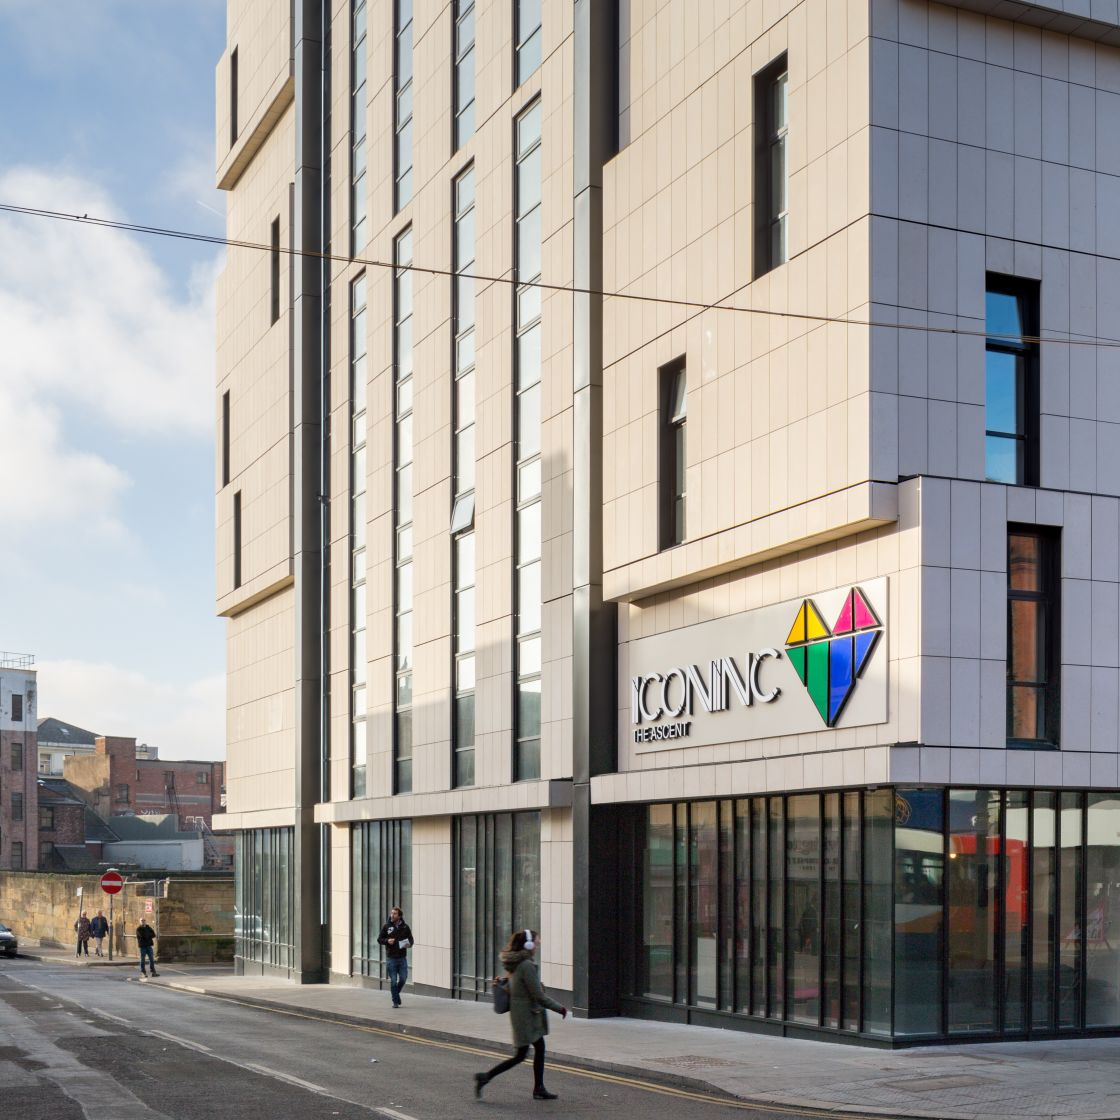 IconInc, The Ascent External. Student Accommodation in Liverpool